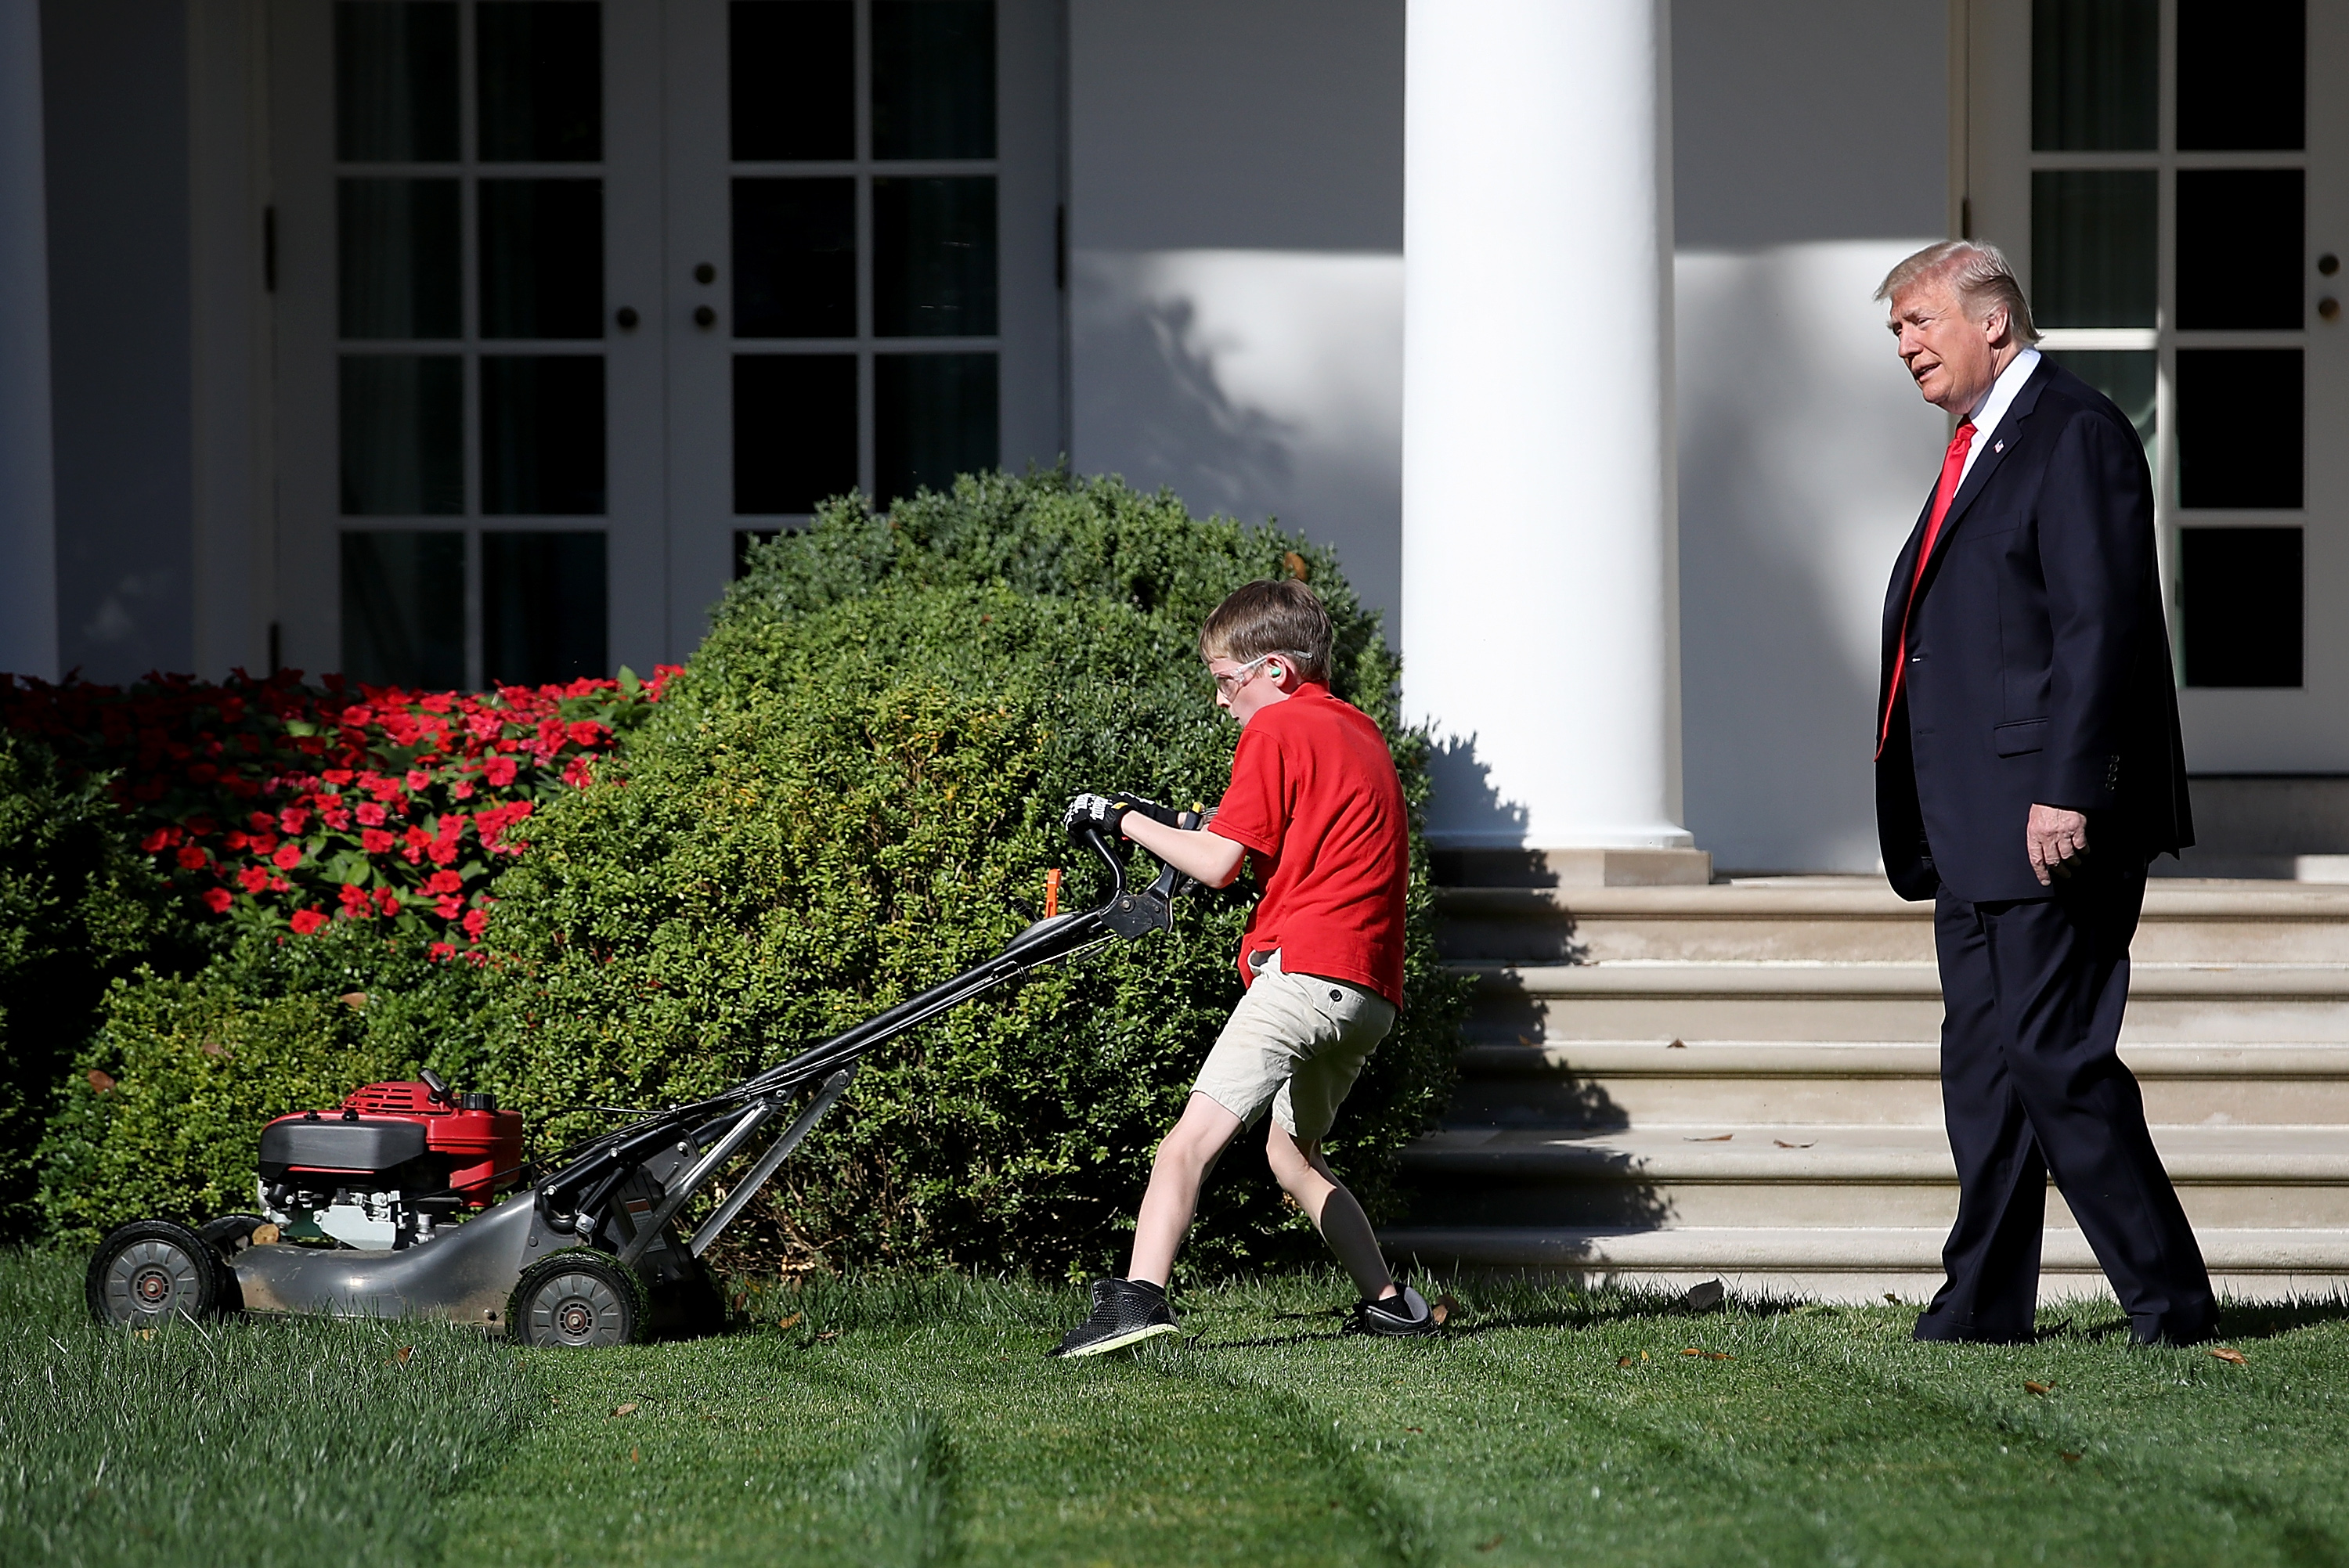 "WASHINGTON, DC - SEPTEMBER 15: U.S. President Donald Trump (R) watches as 11-year-old Frank ""FX"" Giaccio (L) mows the grass in the Rose Garden of the White House September 15, 2017 in Washington, DC. Giaccio, from Falls Church, Virginia, who runs a business called FX Mowing, wrote a letter to Trump expressing admiration for Trump's business background and offered to mow the White House grass. (Photo by Win McNamee/Getty Images)"